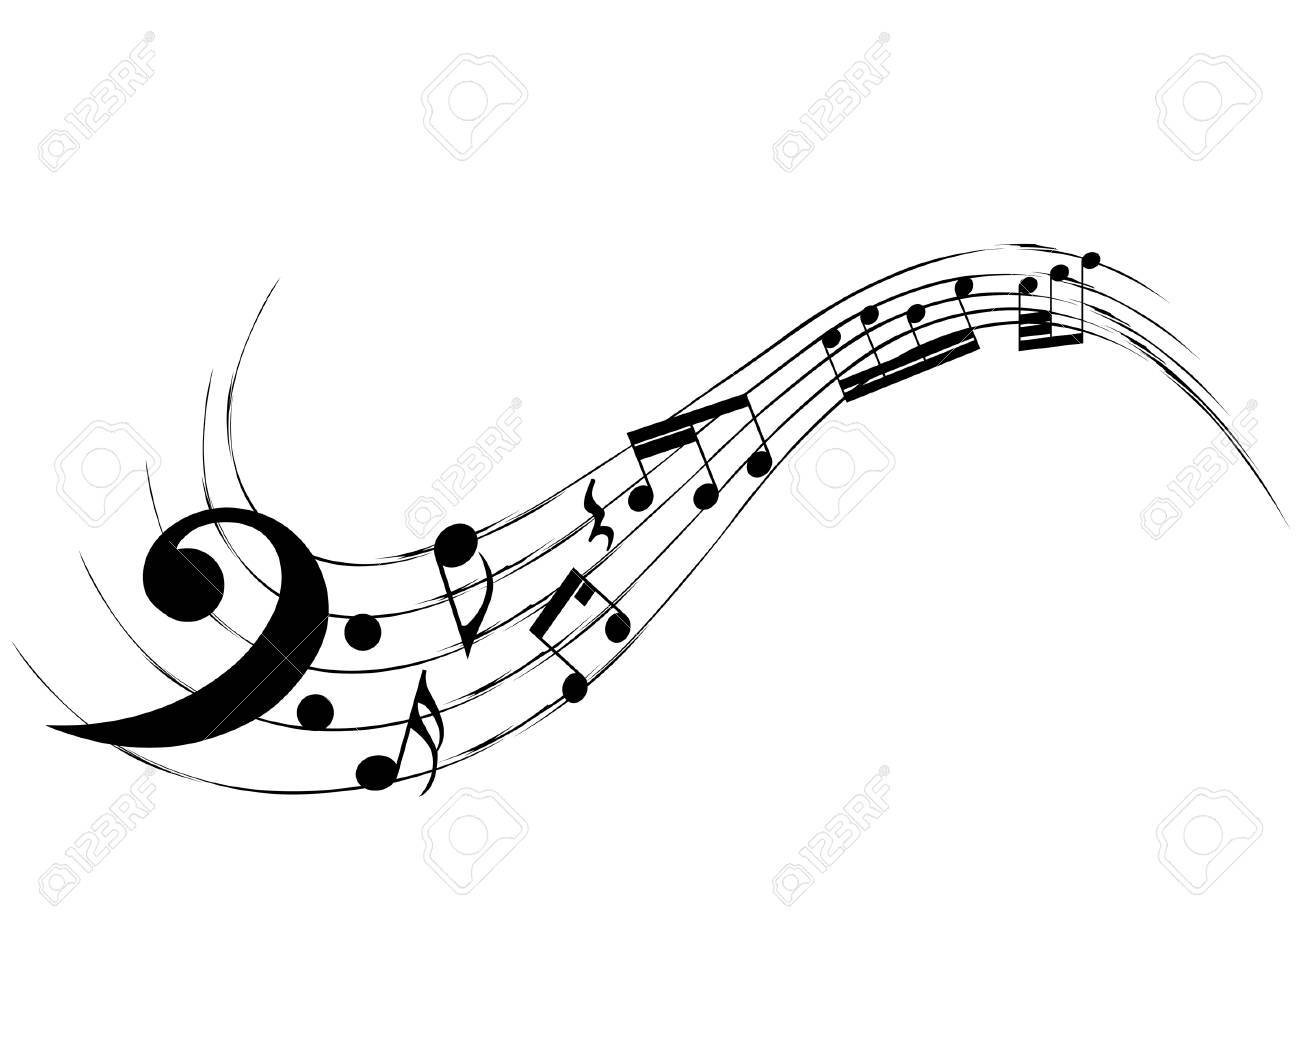 vector musical notes staff background for design use royalty free rh 123rf com Music Notes Symbols Music Notes